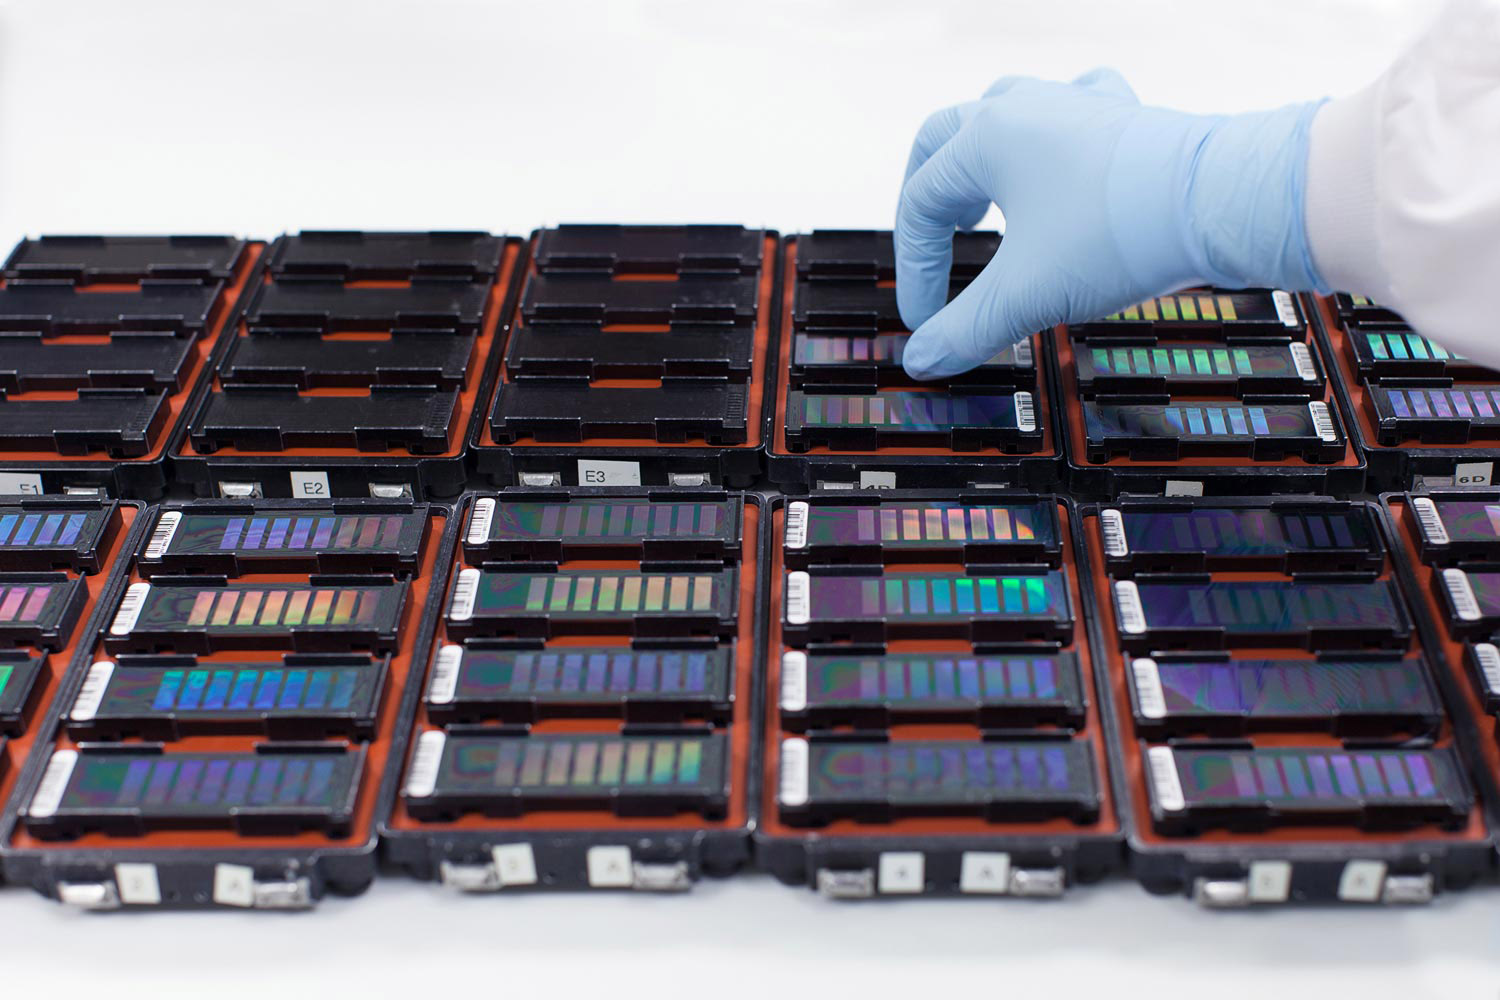 23andMe Array Chips, Los Angeles, California, 2012